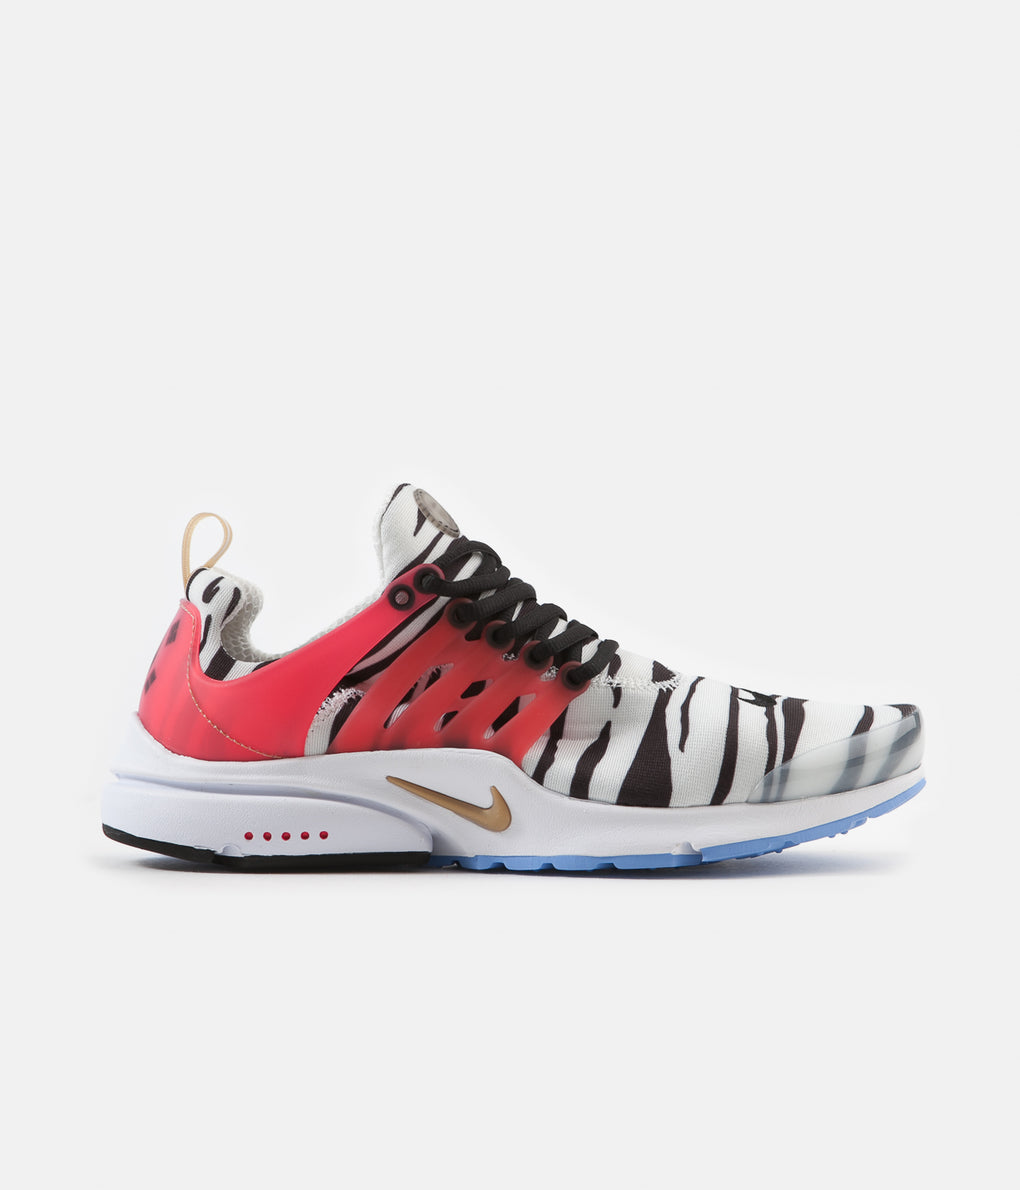 Nike Air Presto Shoes - White / Metallic Gold - Black - Red Orbit